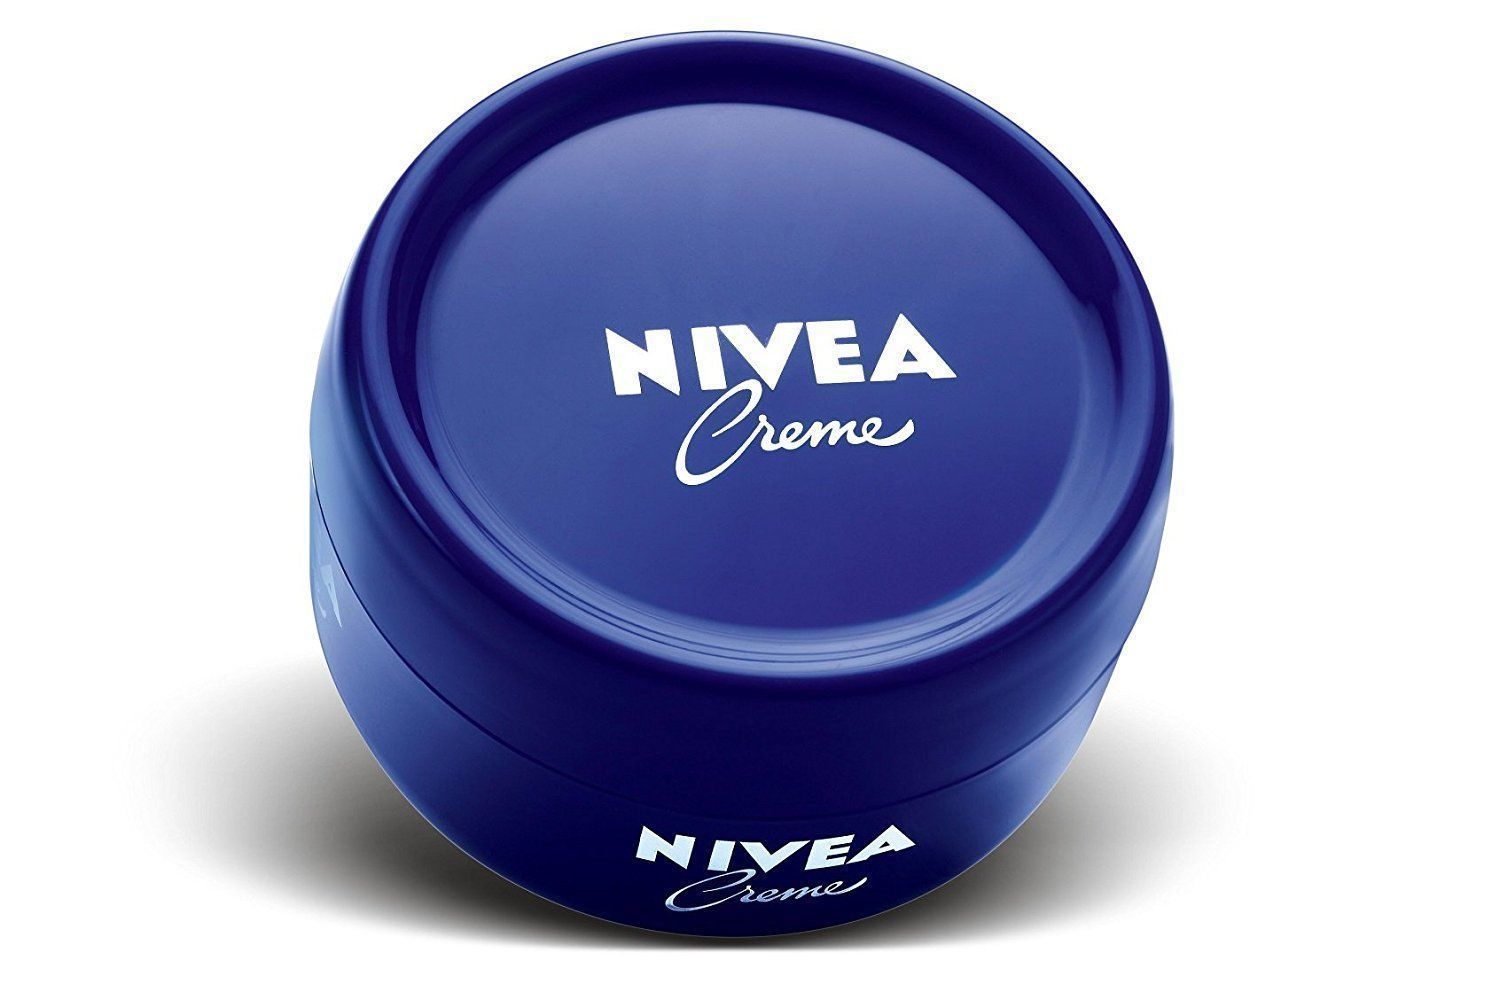 Nivea Crème Cares Skin Cream Soft and Smooth For All Skin Types 100ml